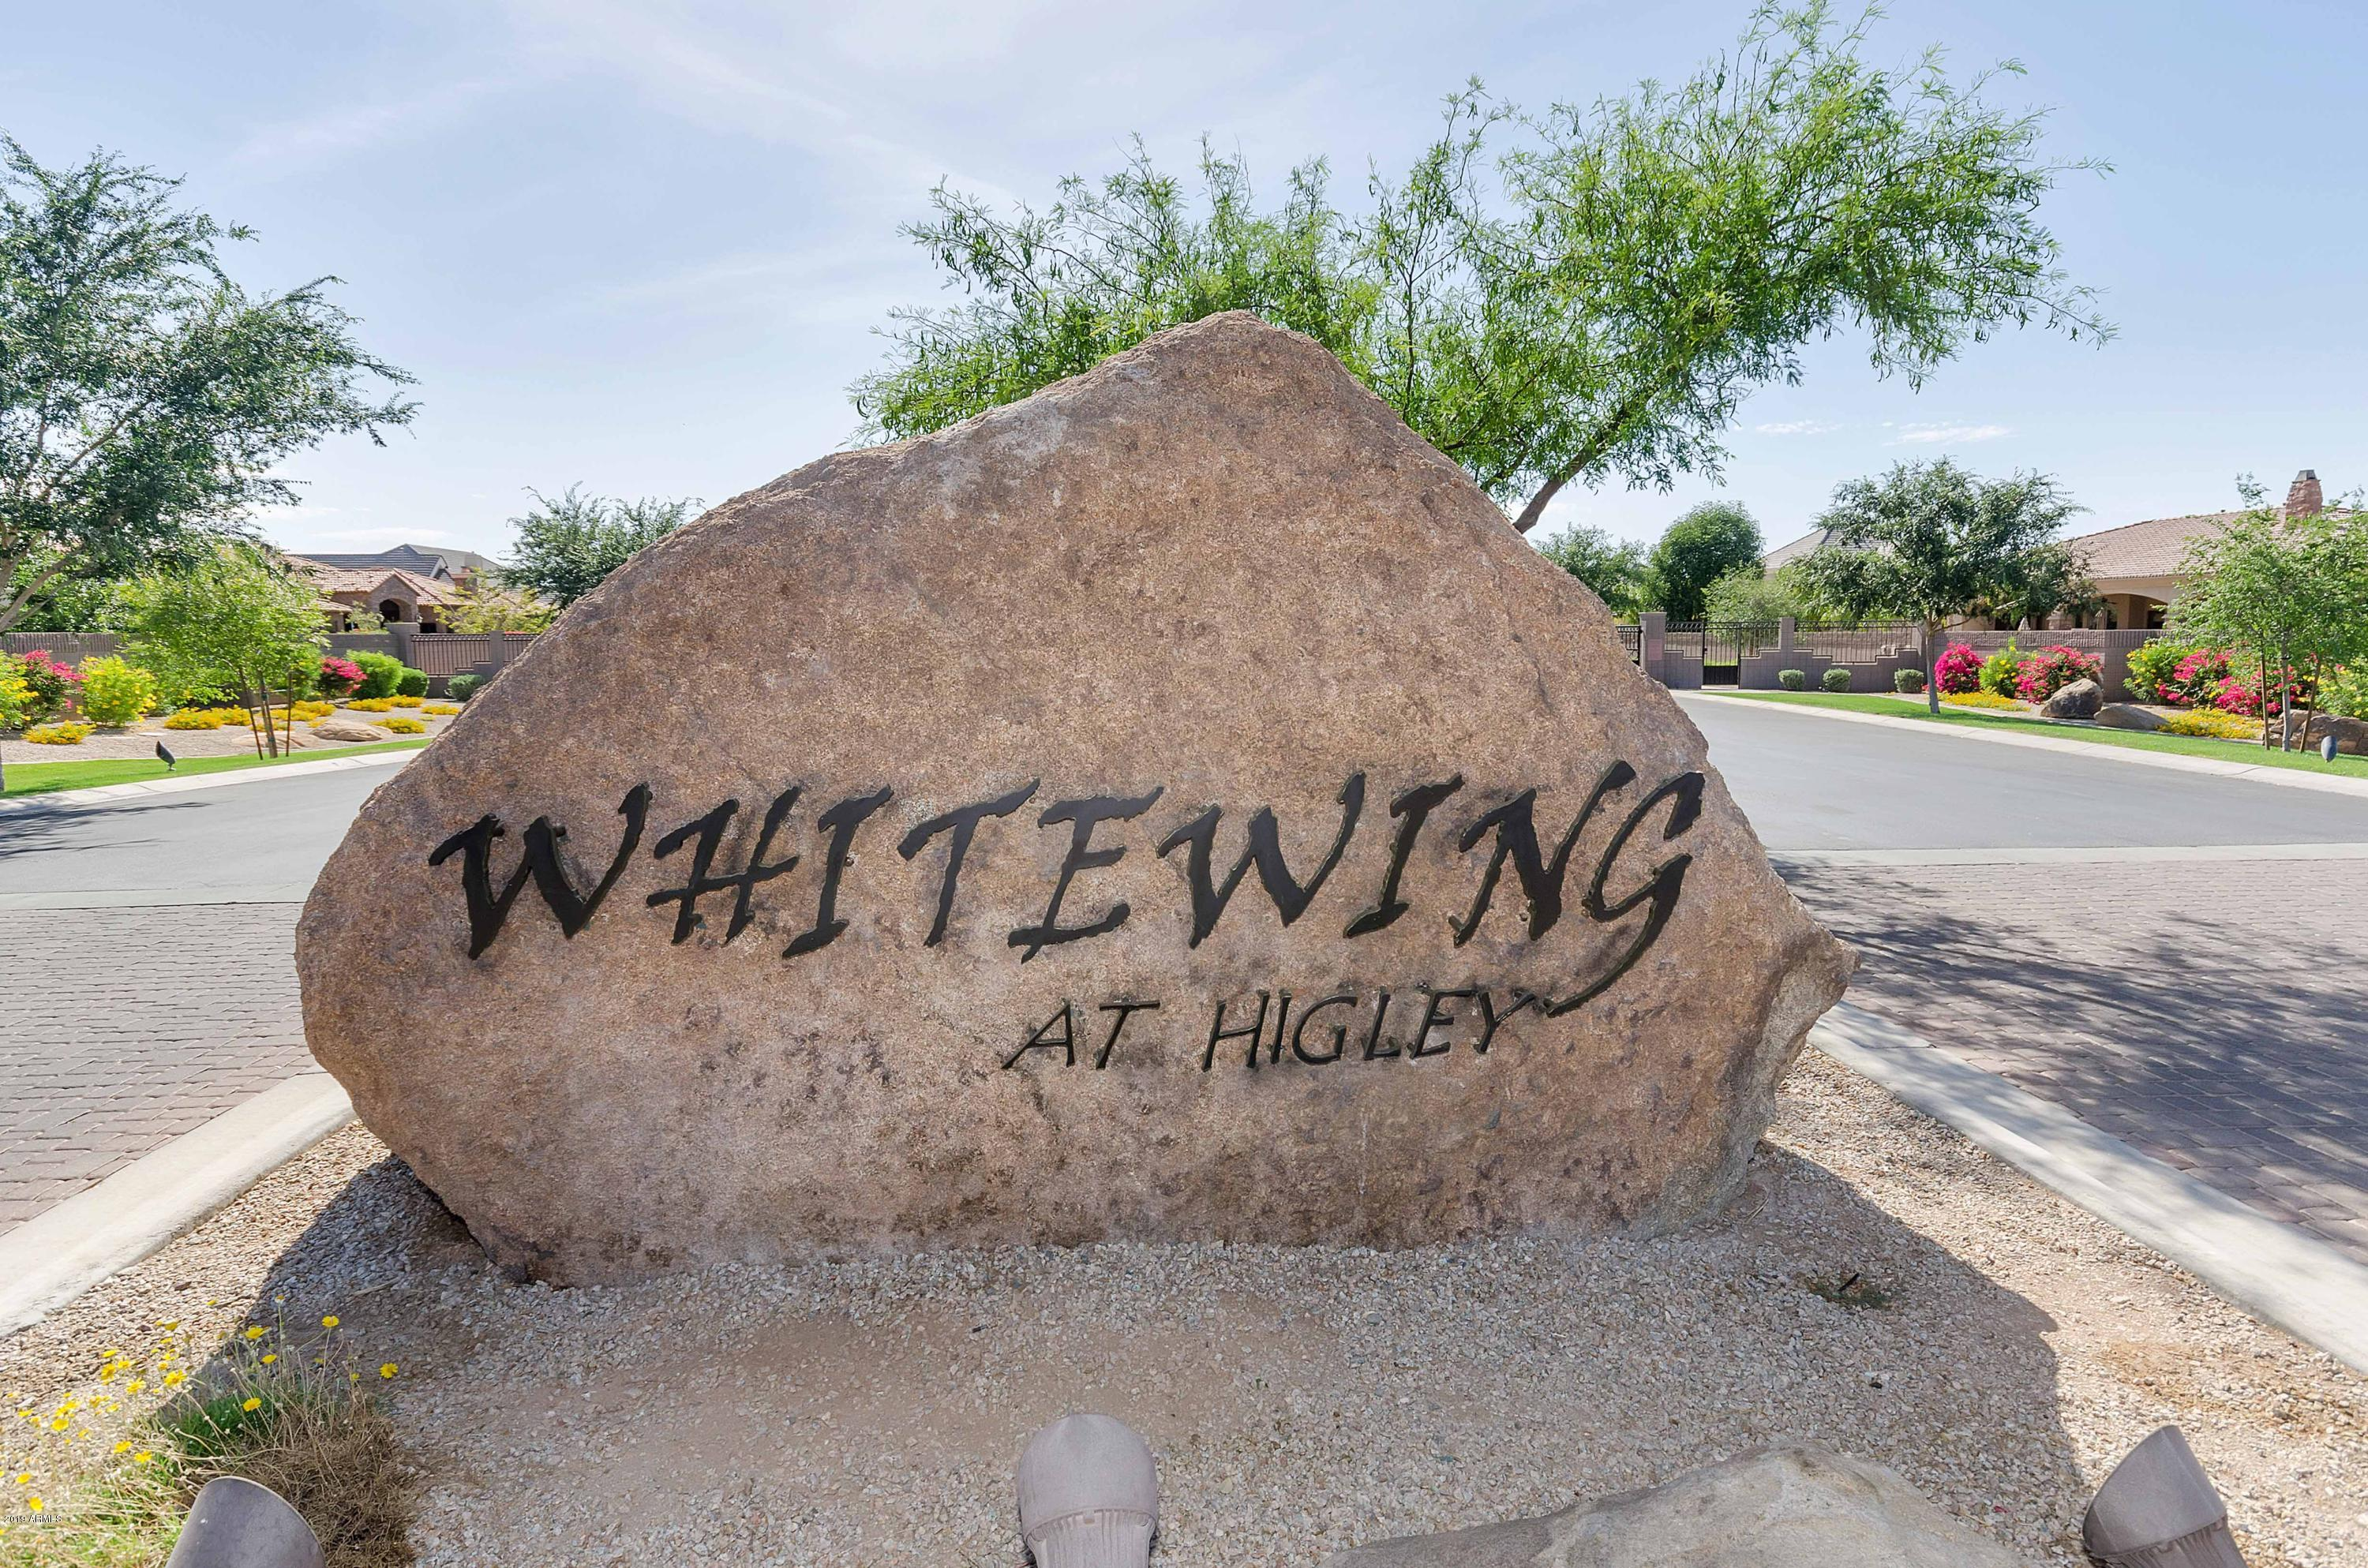 MLS 5865429 2998 E WATERMAN Way, Gilbert, AZ 85297 Gilbert AZ Whitewing At Higley